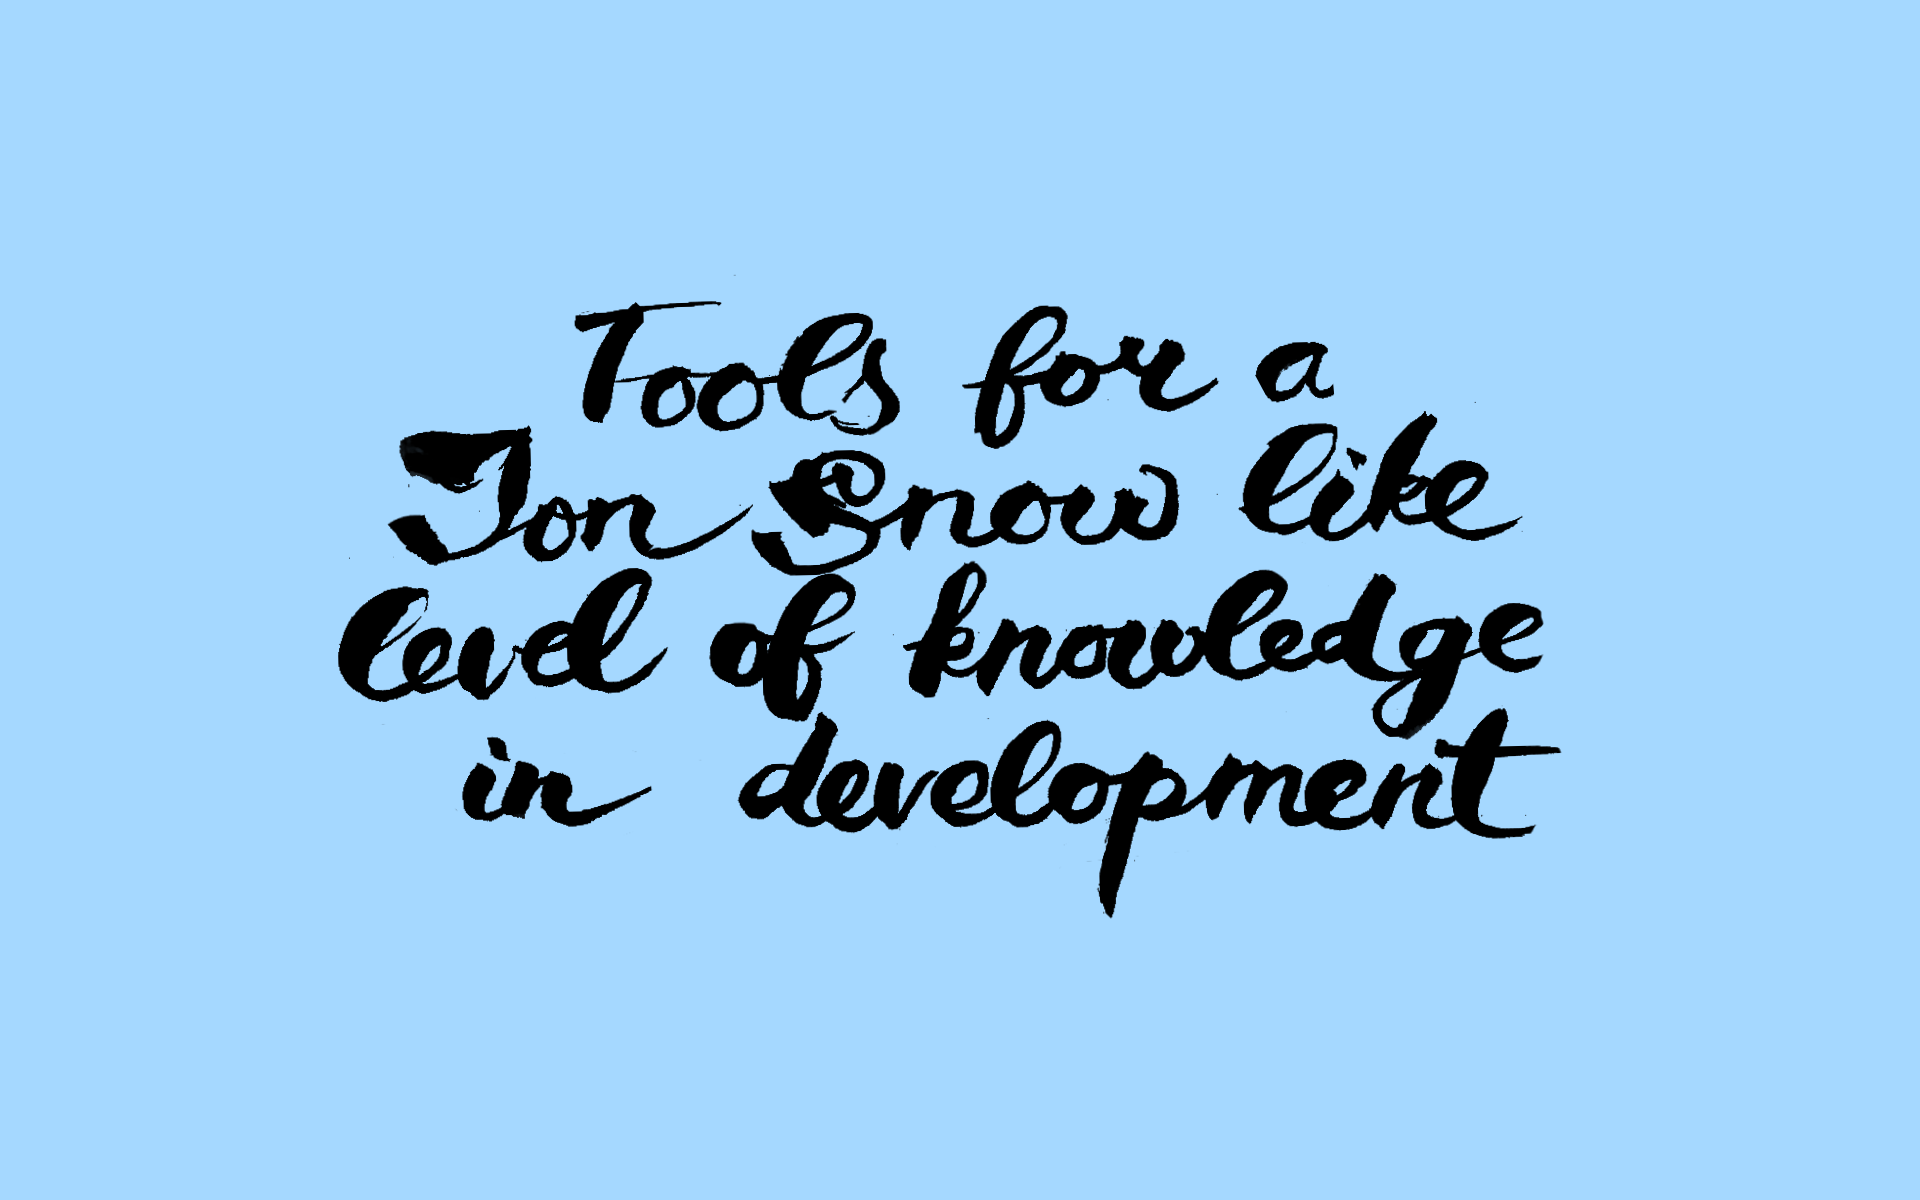 Tools for a Jon Snow like level of knowledge in development